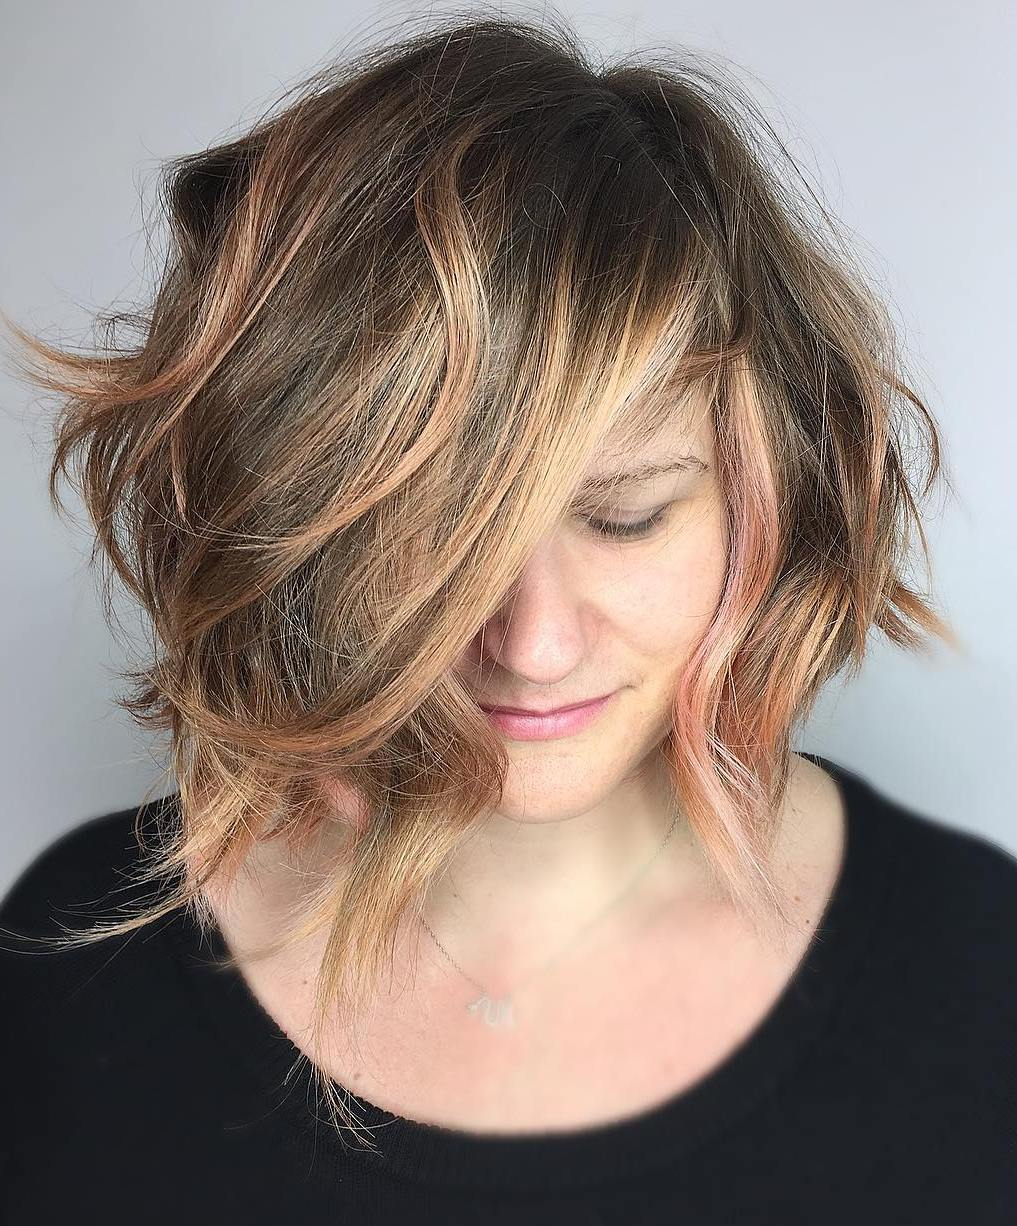 Romantic Uneven Bob with Balayage Highlights